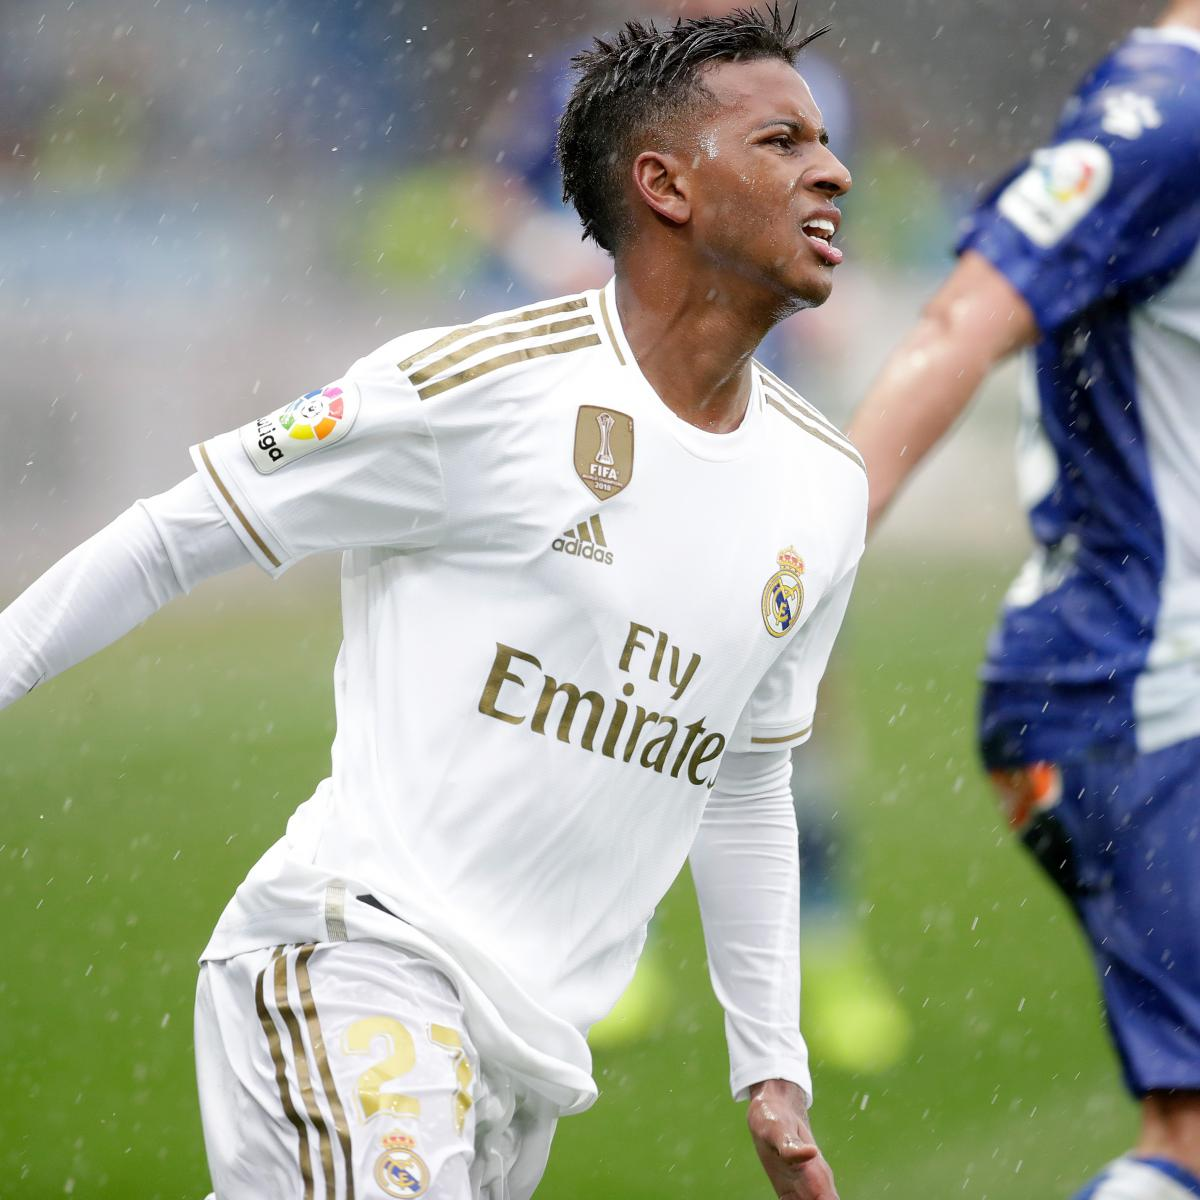 Rodrygo Acted 'Like a Brat' in Real Madrid Castilla Dismissal, Says Xabi Irureta